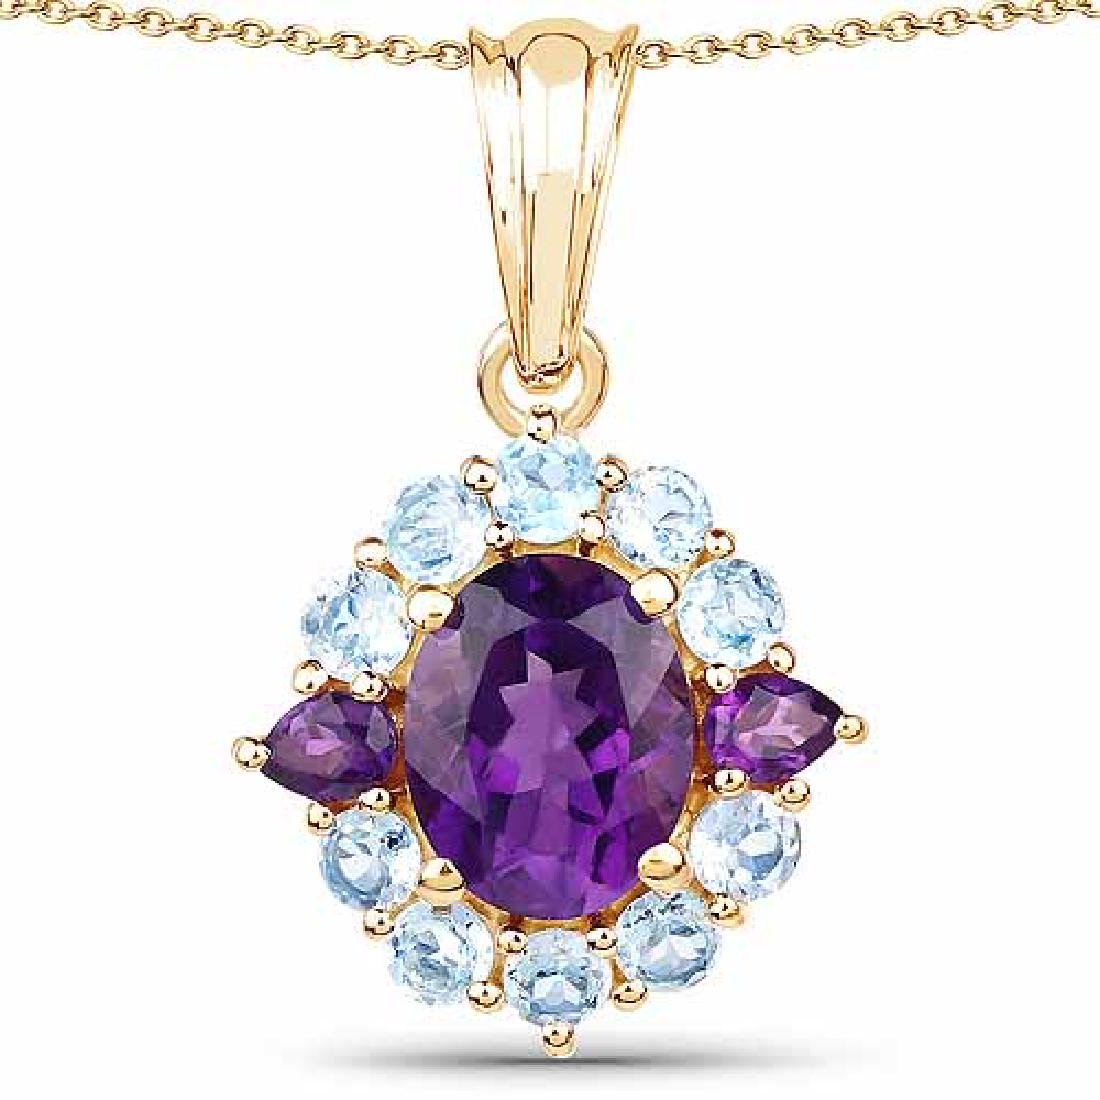 14K Yellow Gold Plated 3.70 Carat Genuine Amethyst and